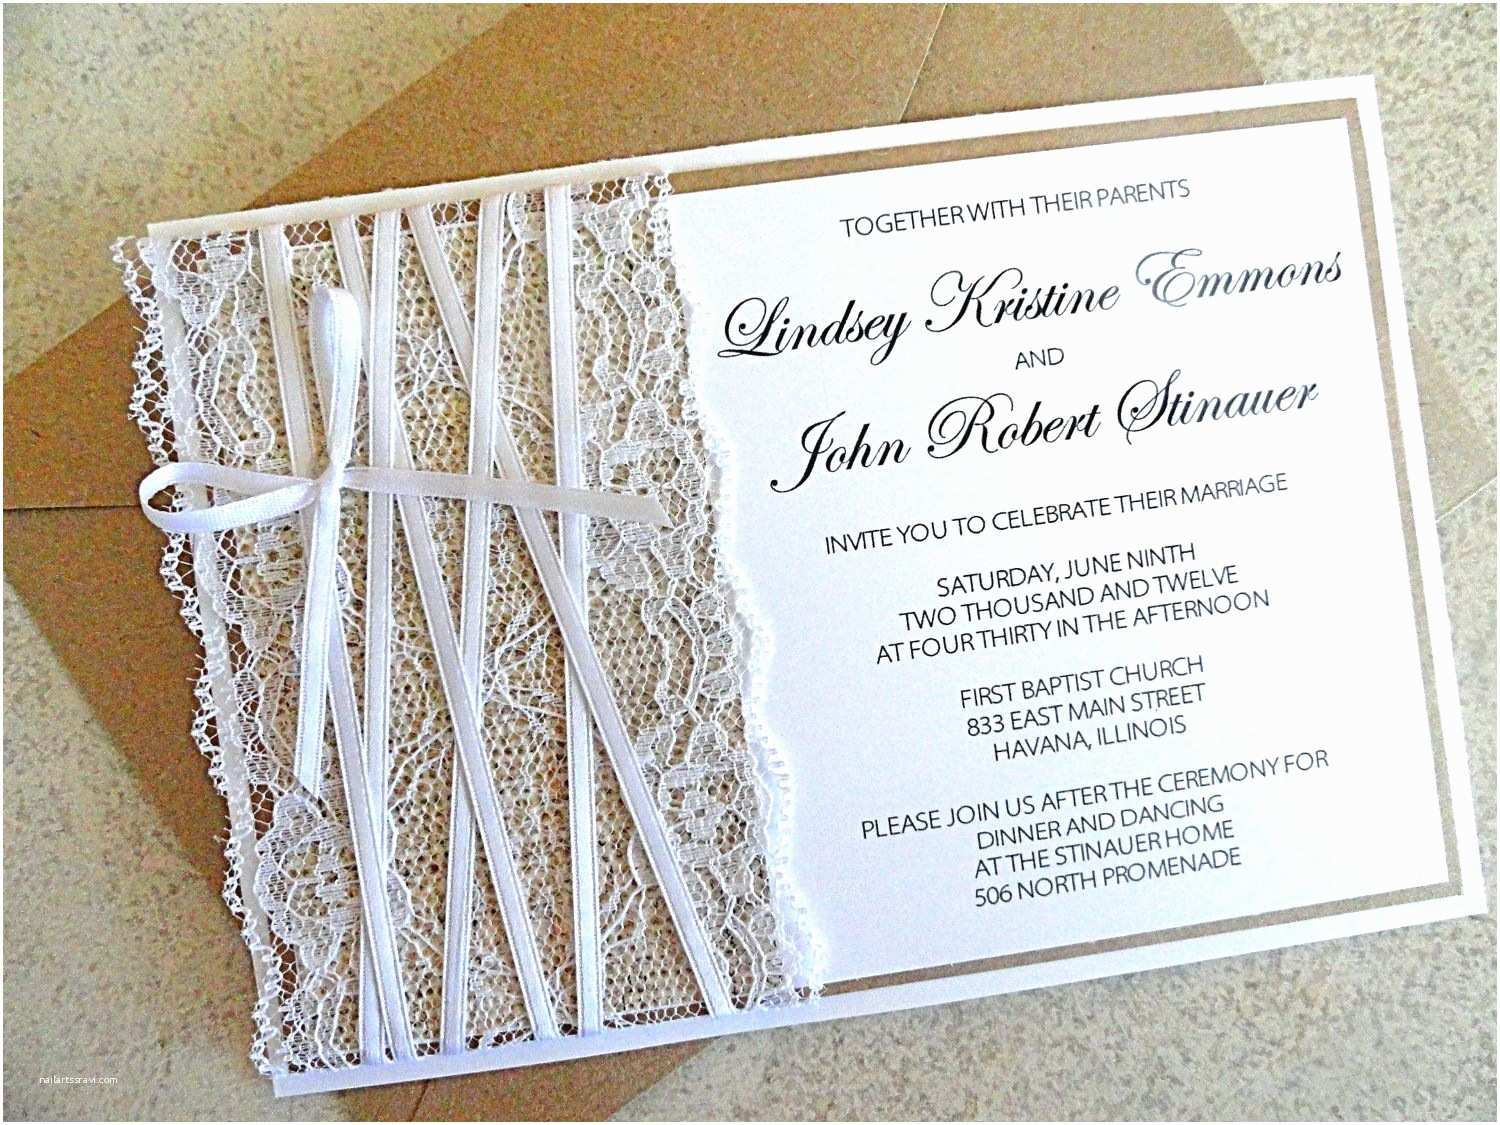 Diy Lace Wedding Invitations Diy Wedding Shower Invitations Diy Bridal Shower